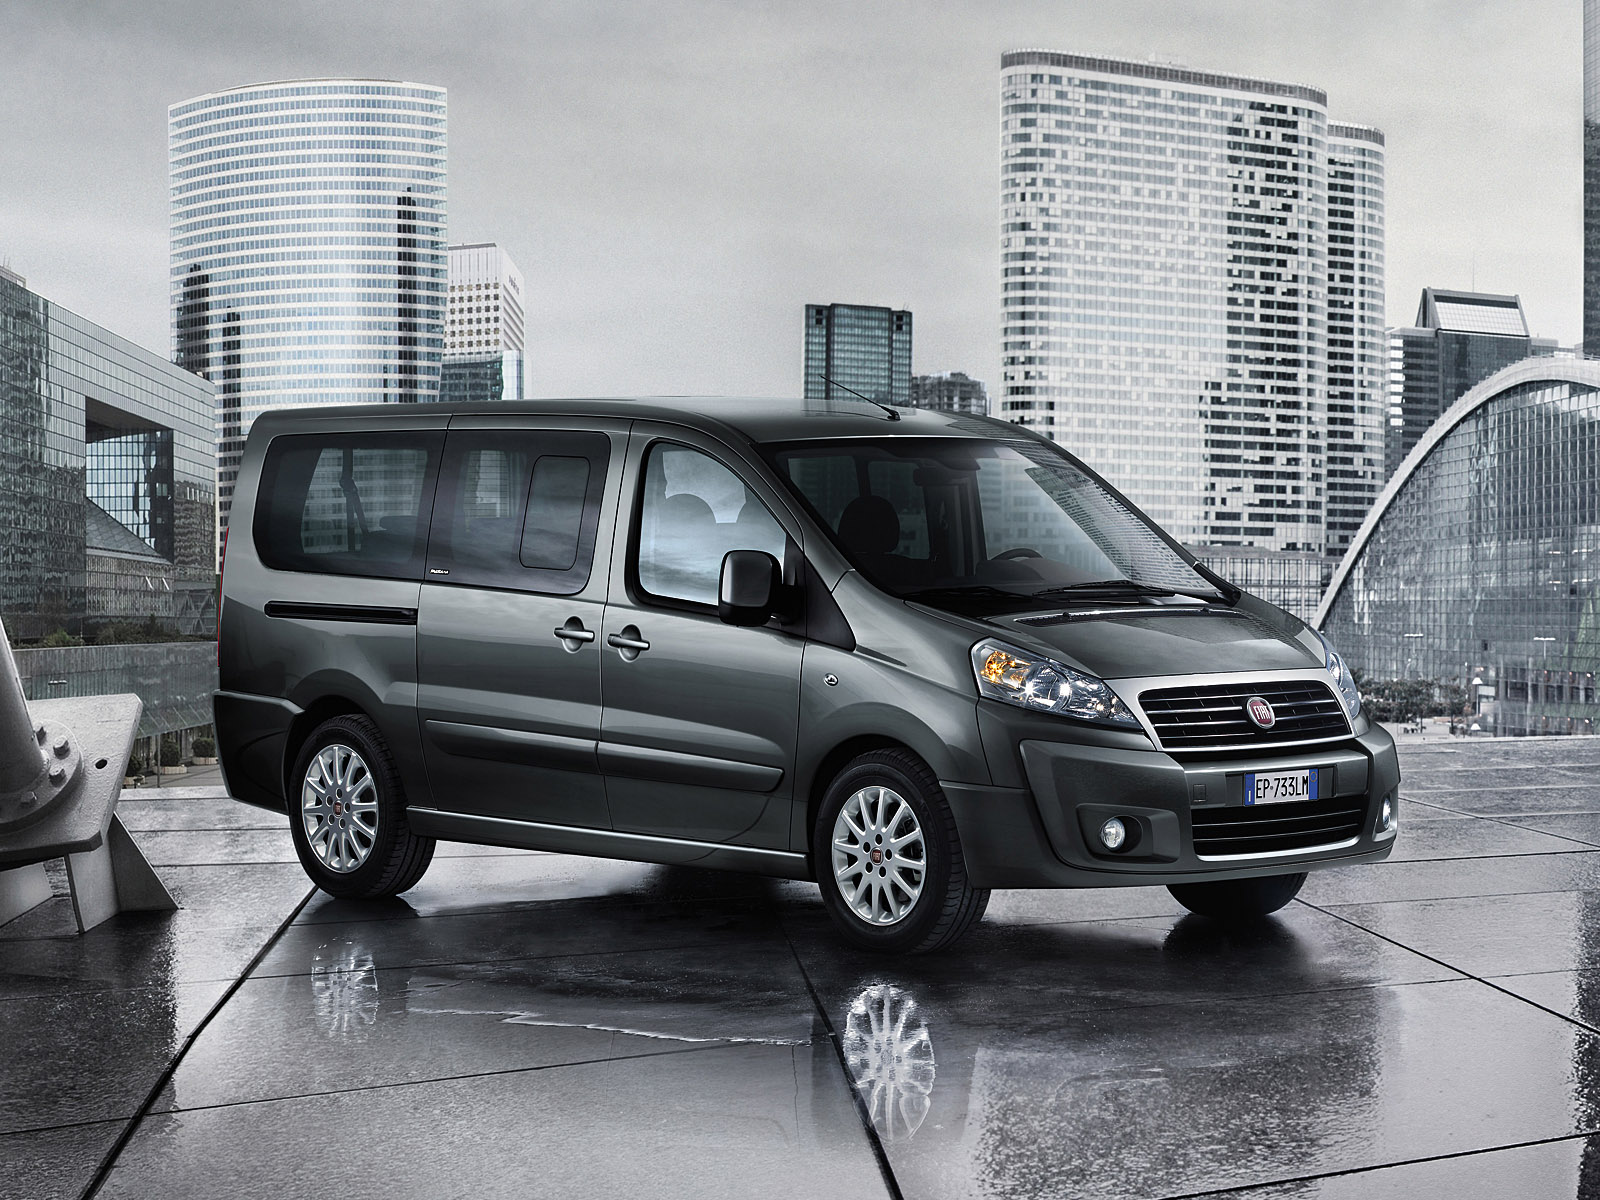 fiat scudo 2 0 2014 technical specifications interior and exterior photo. Black Bedroom Furniture Sets. Home Design Ideas